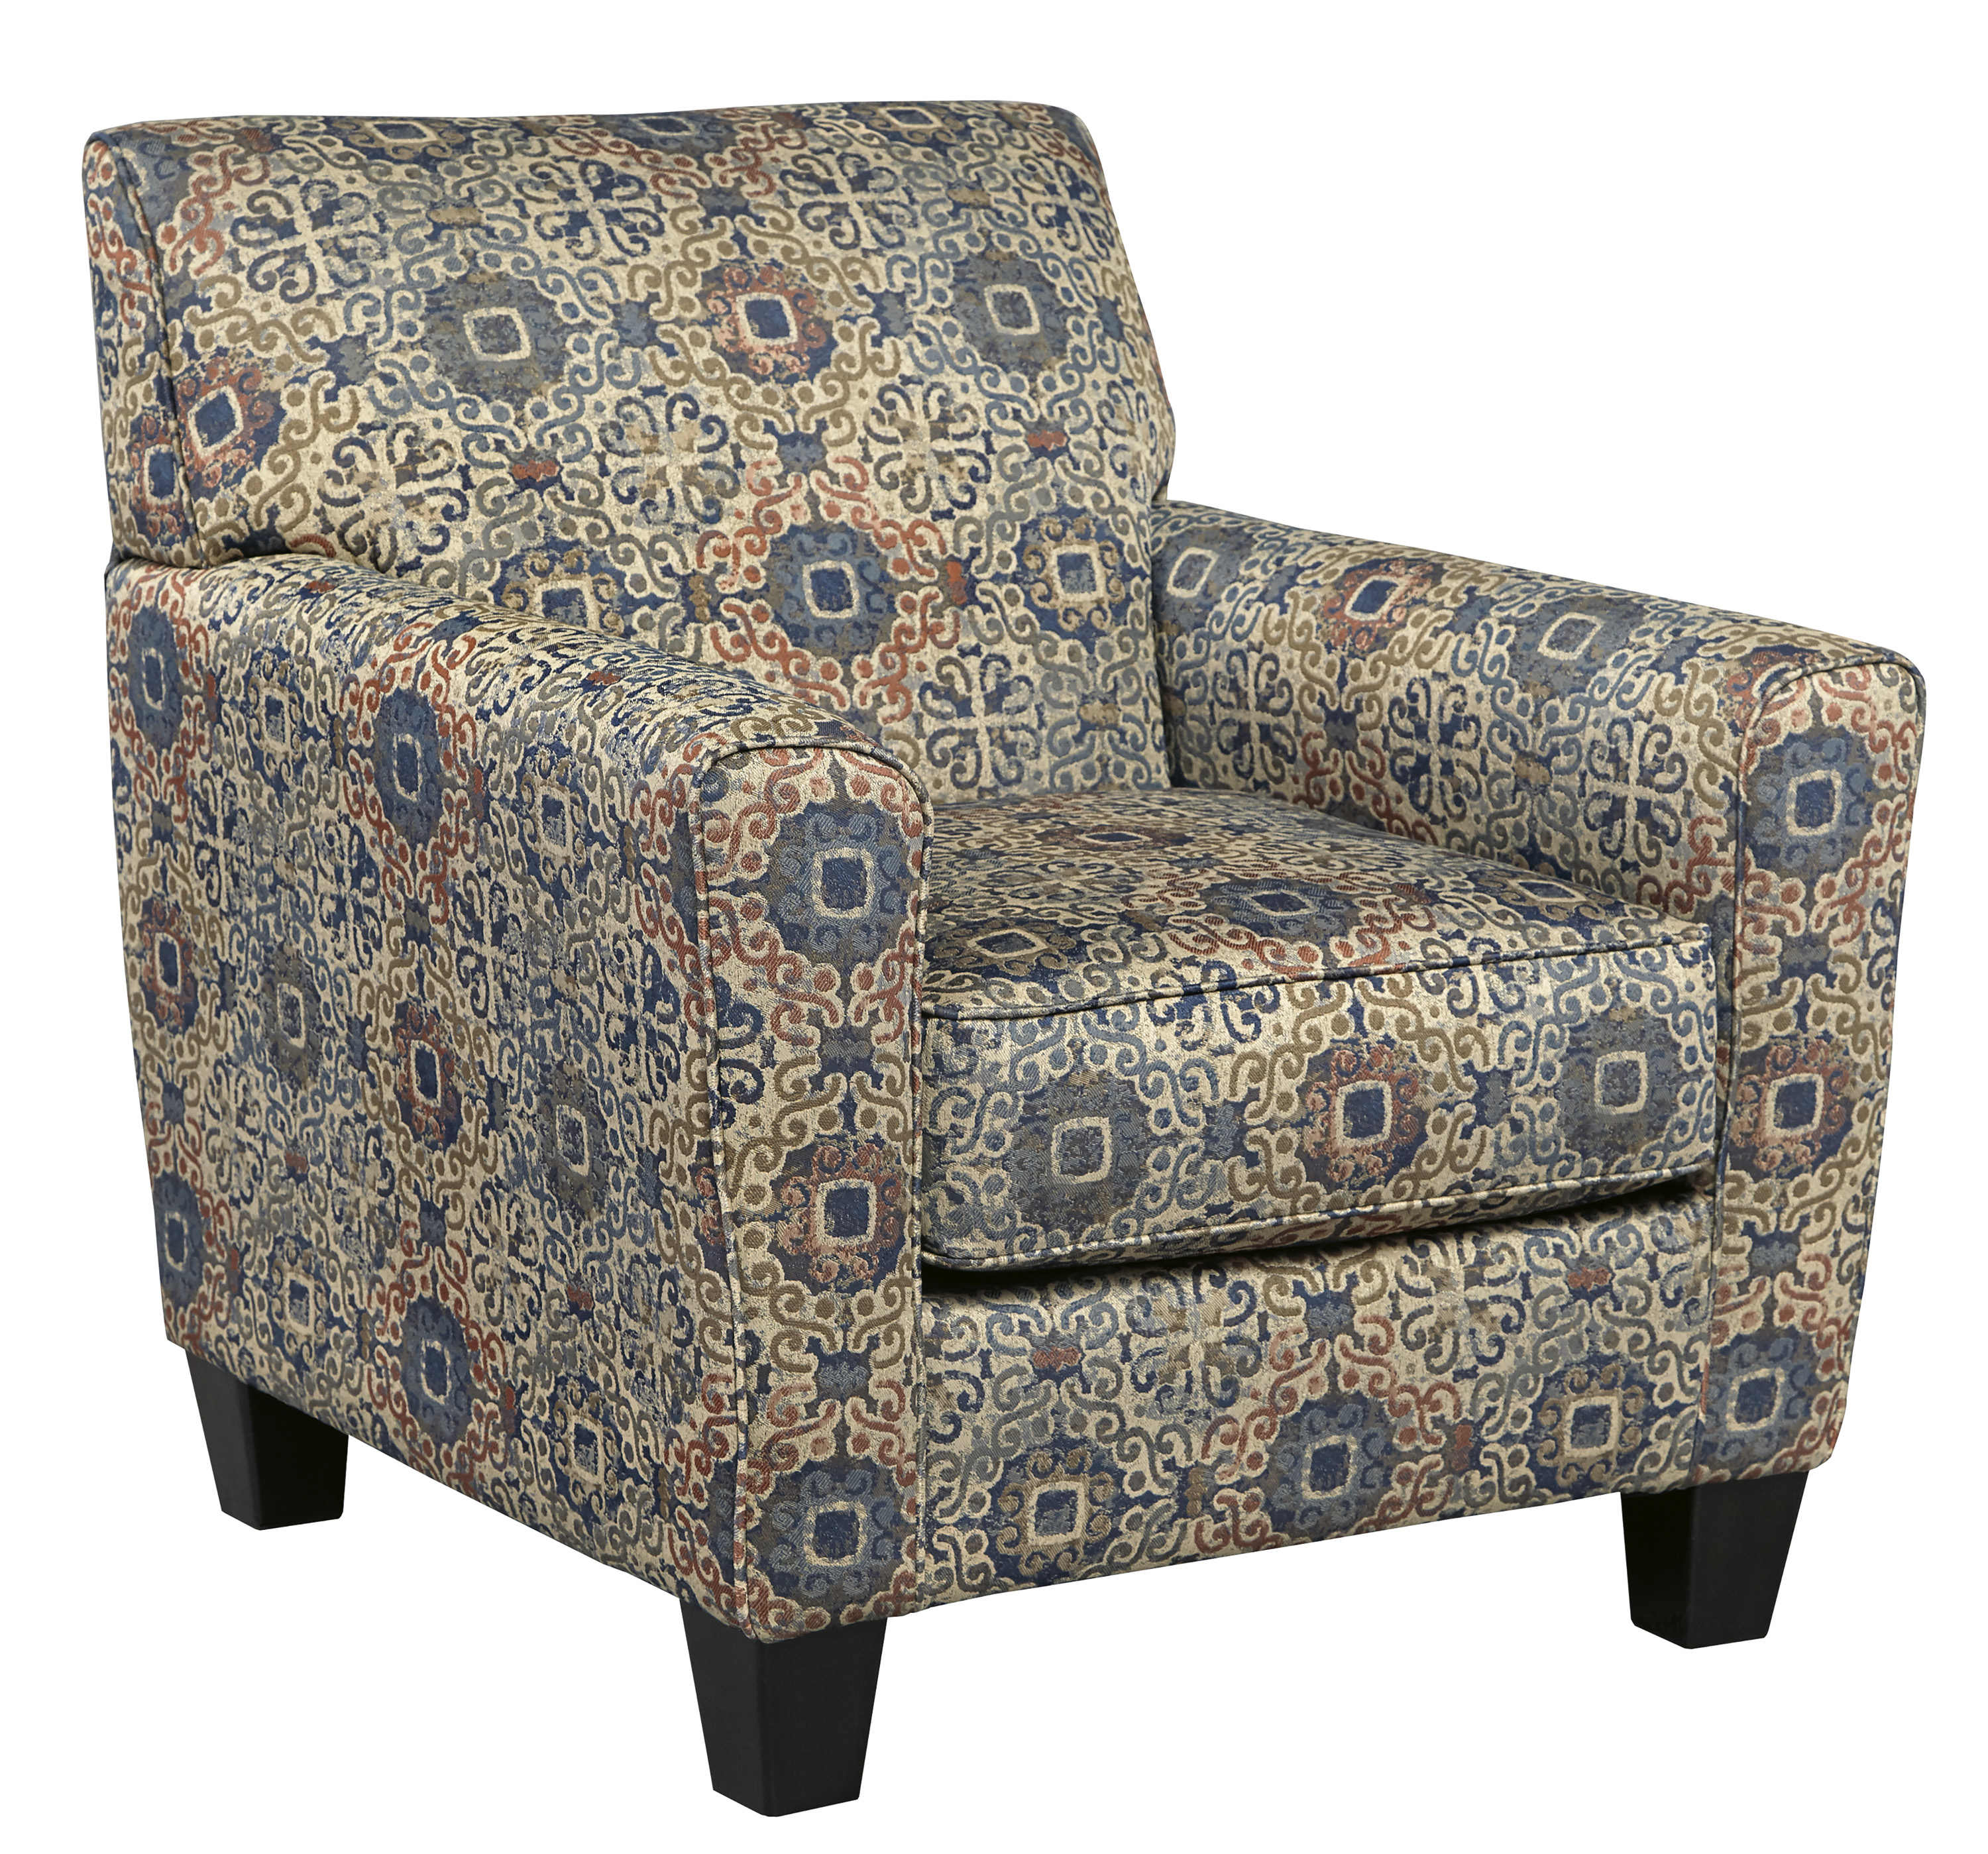 Ashley Furniture Belcampo Rust Accent Chair The Classy Home